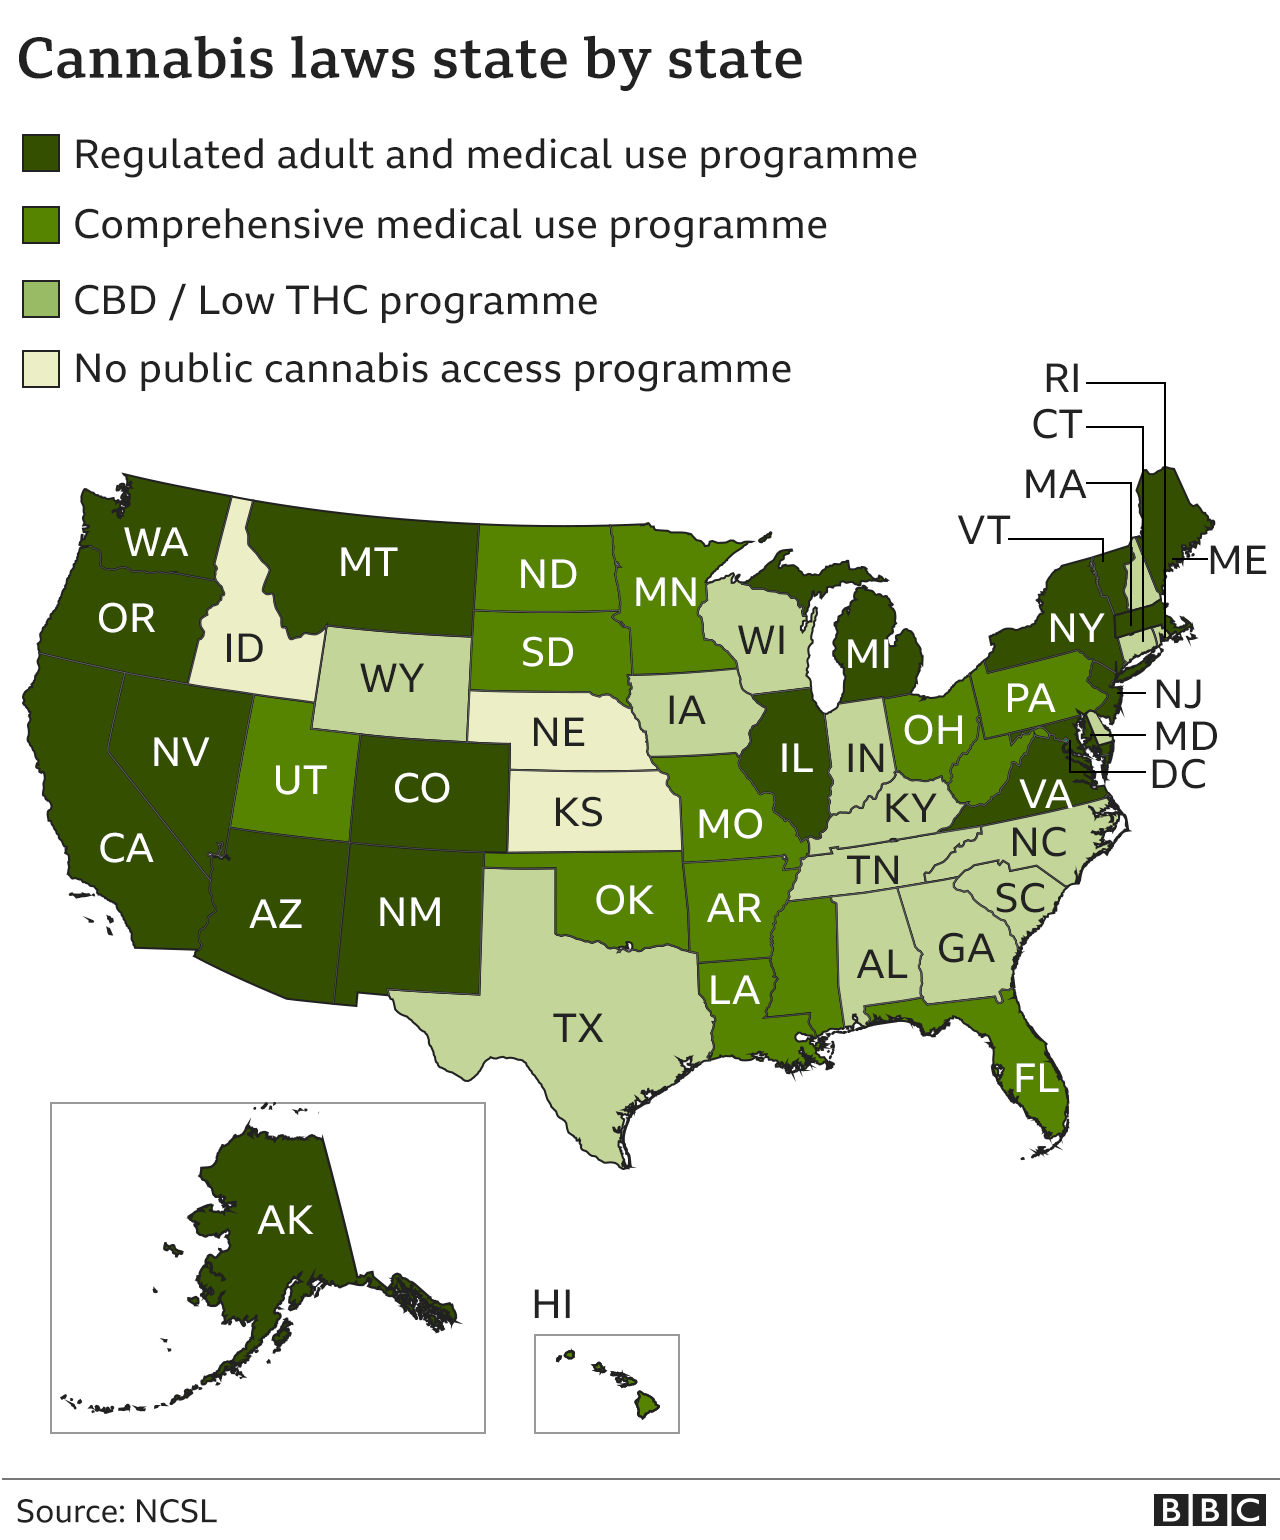 Cannabis laws state by state